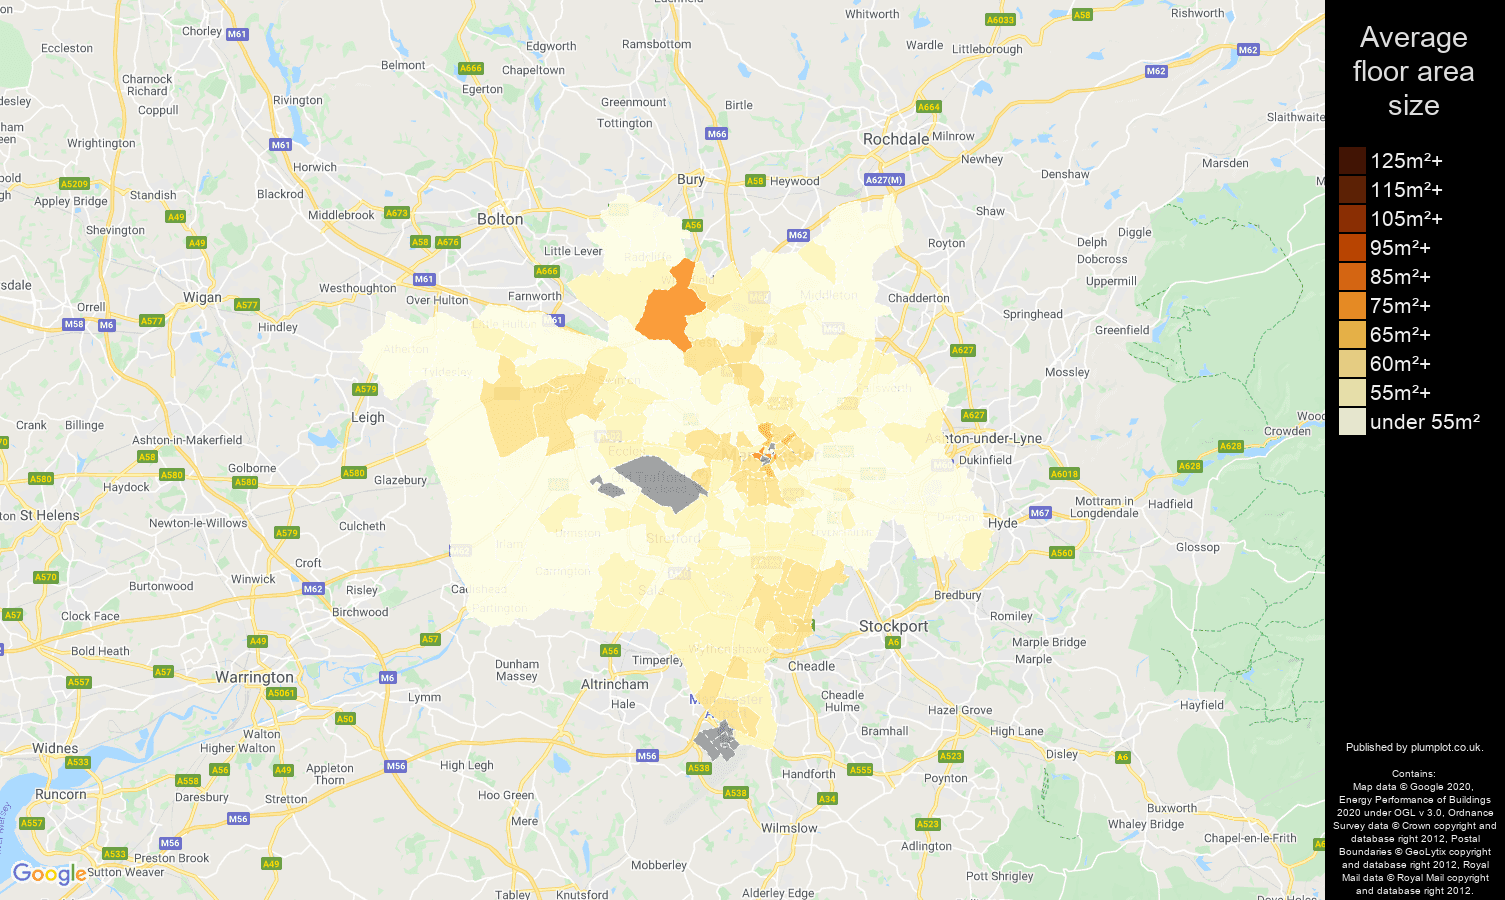 Manchester map of average floor area size of flats